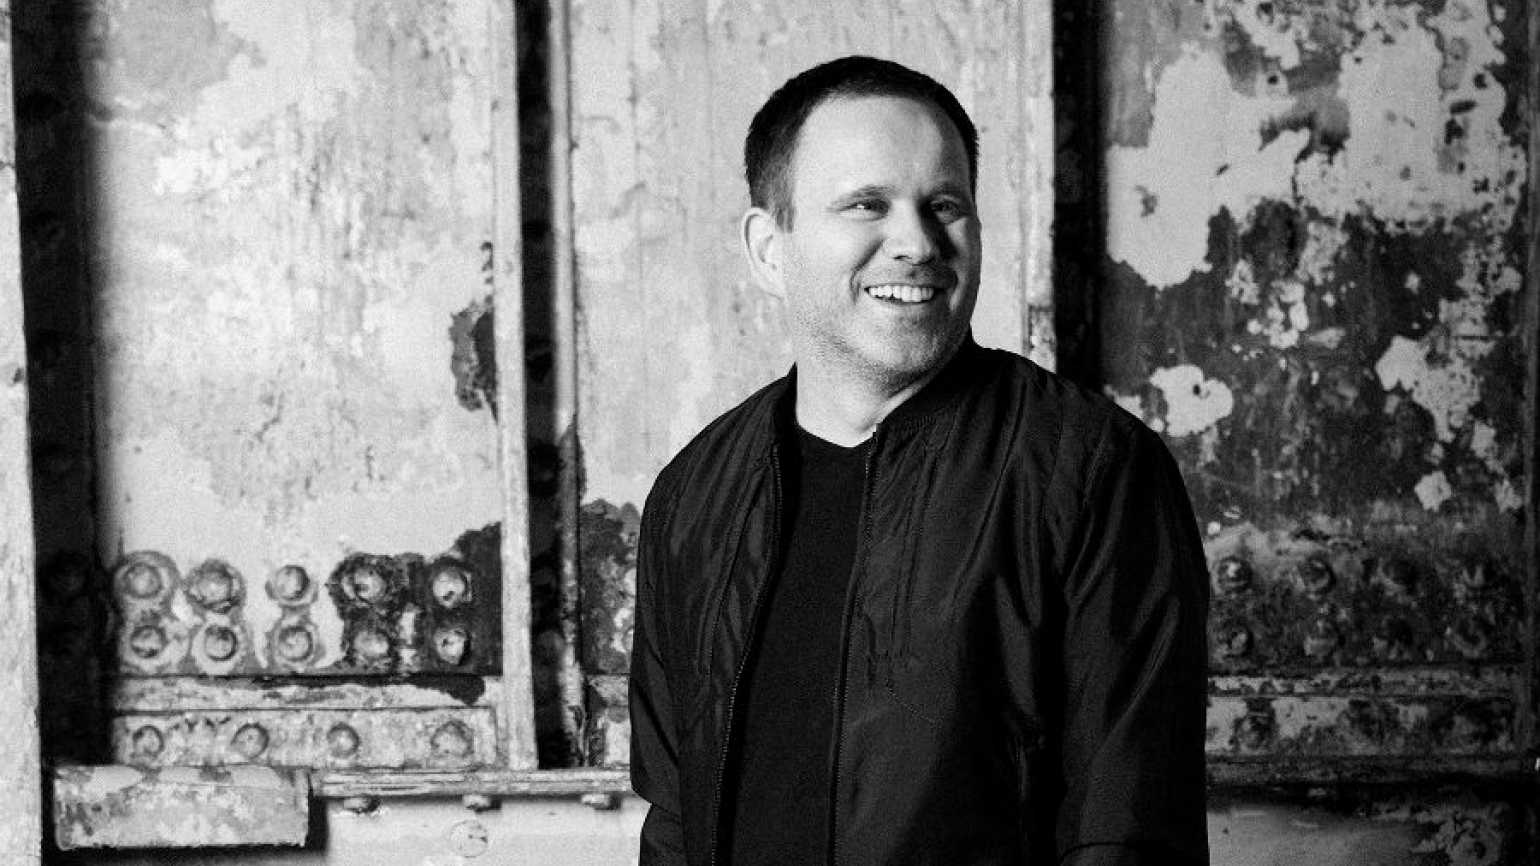 Christian worship singer Matt Redman shares about his father's suicide.